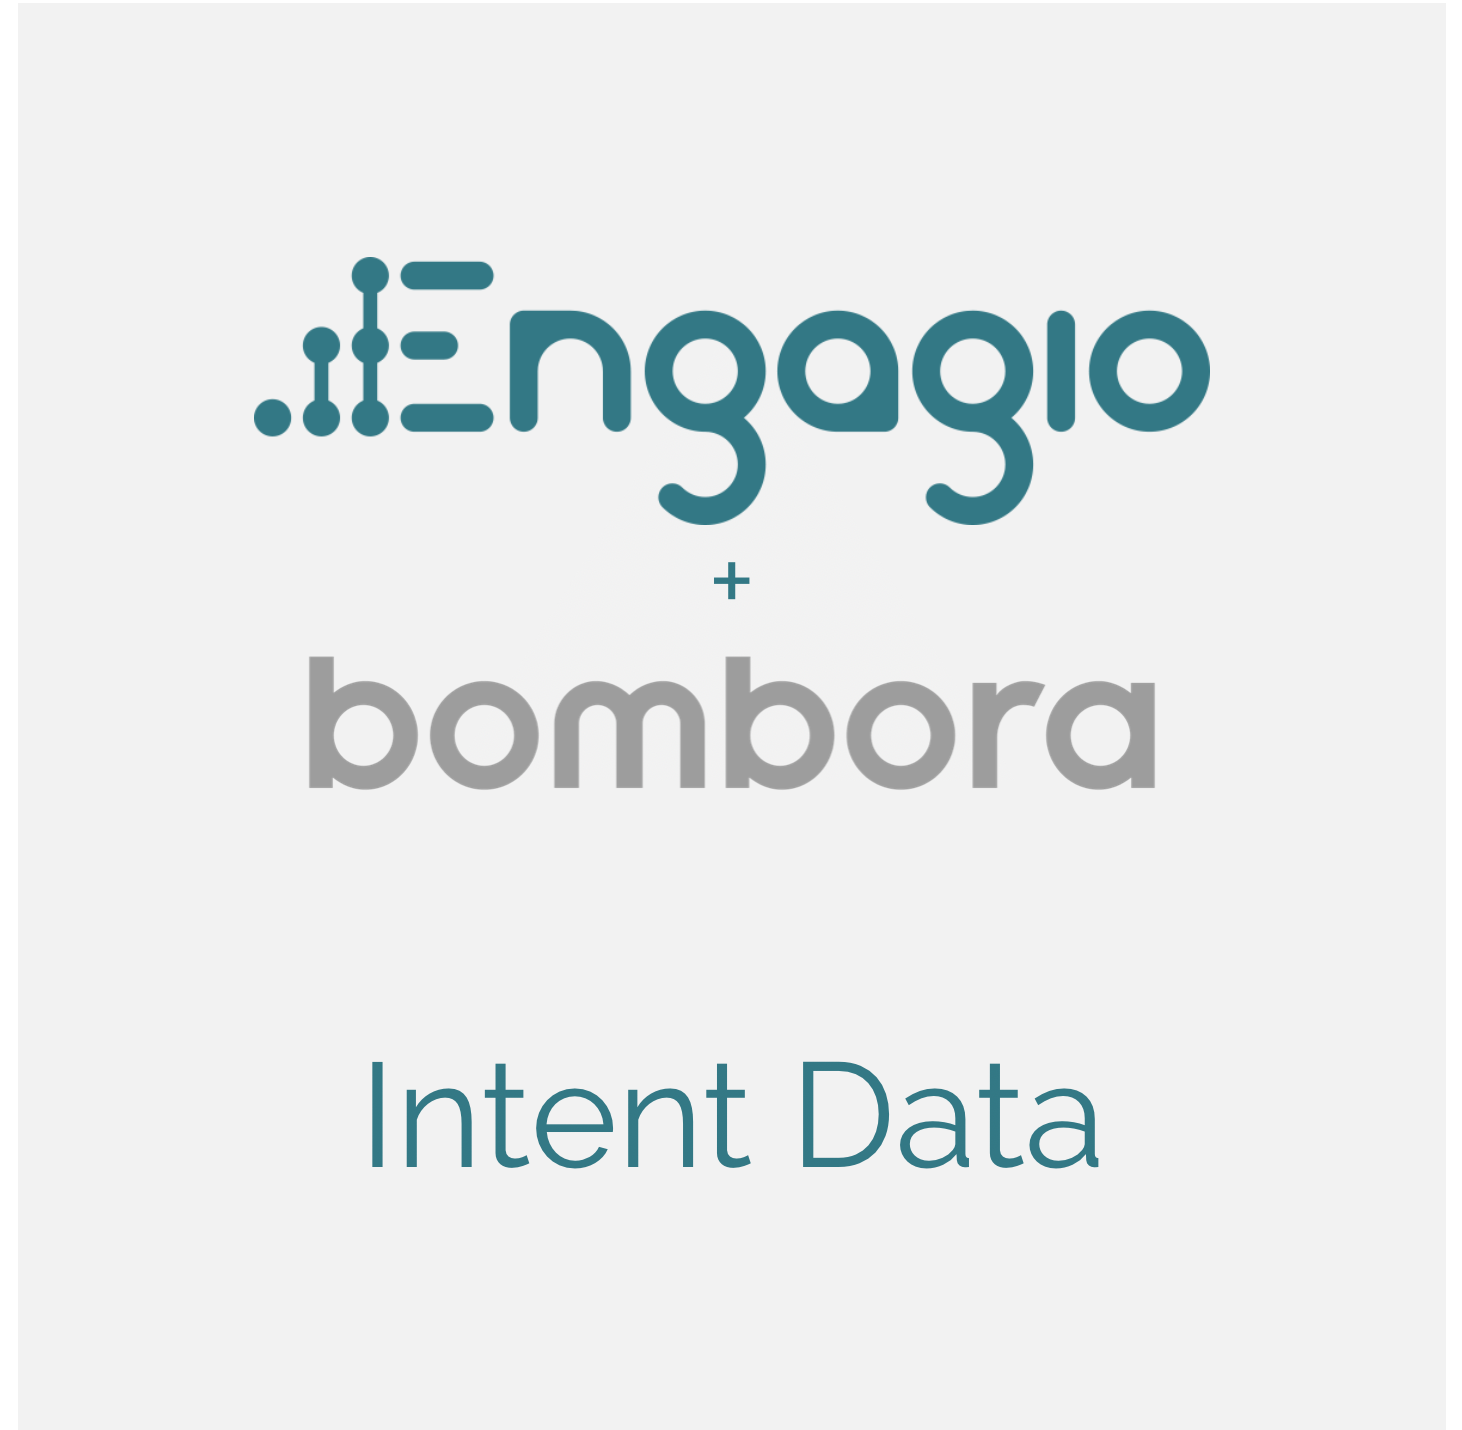 Intent Data (Bombora Integration)